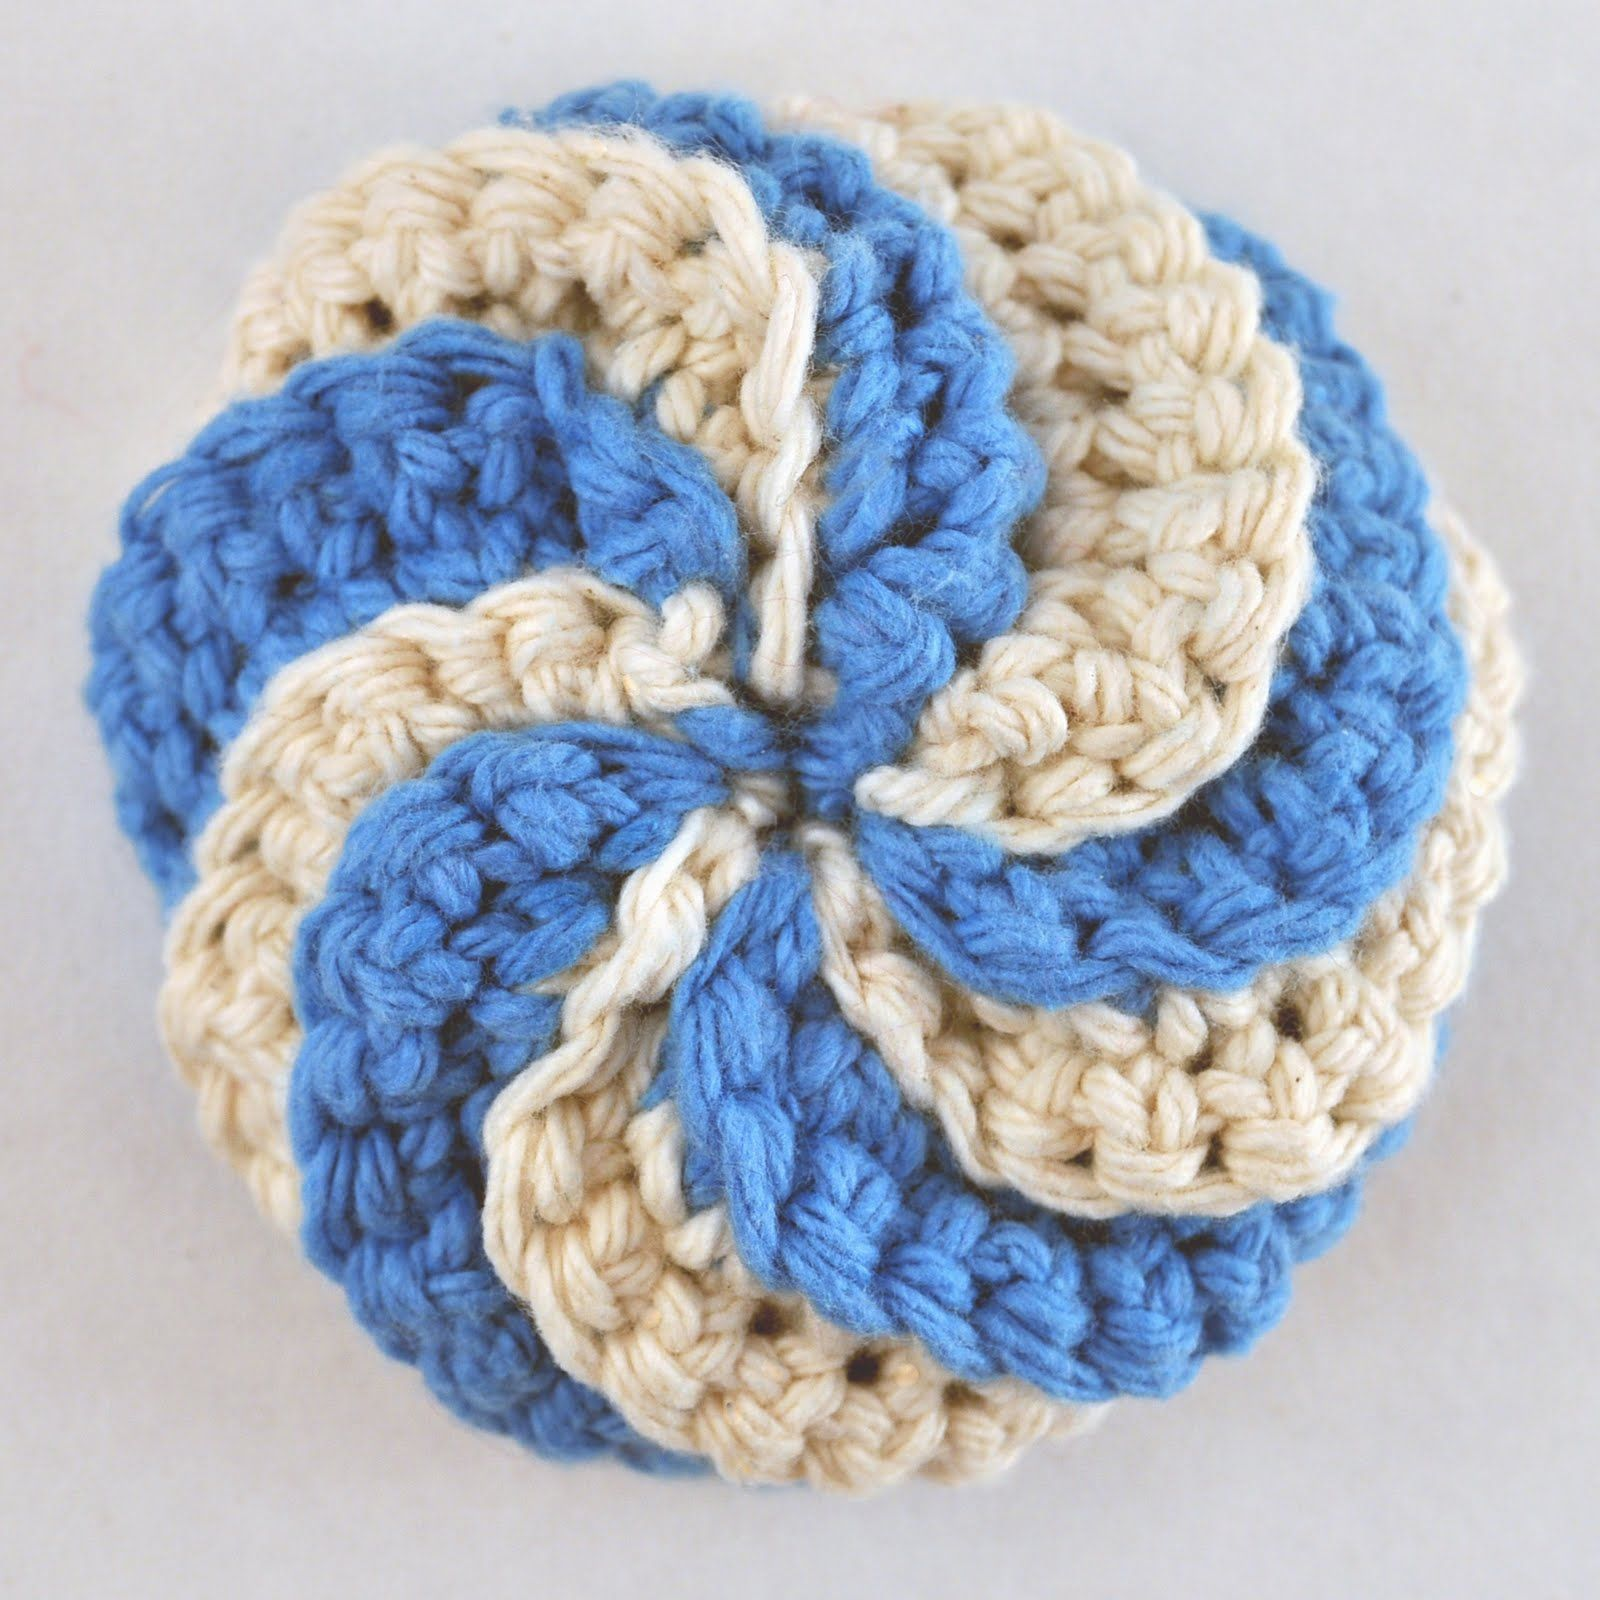 CrochetBeautyShoppe: Crochet Tawashi Scrubbies | Crochet/Knitting ...